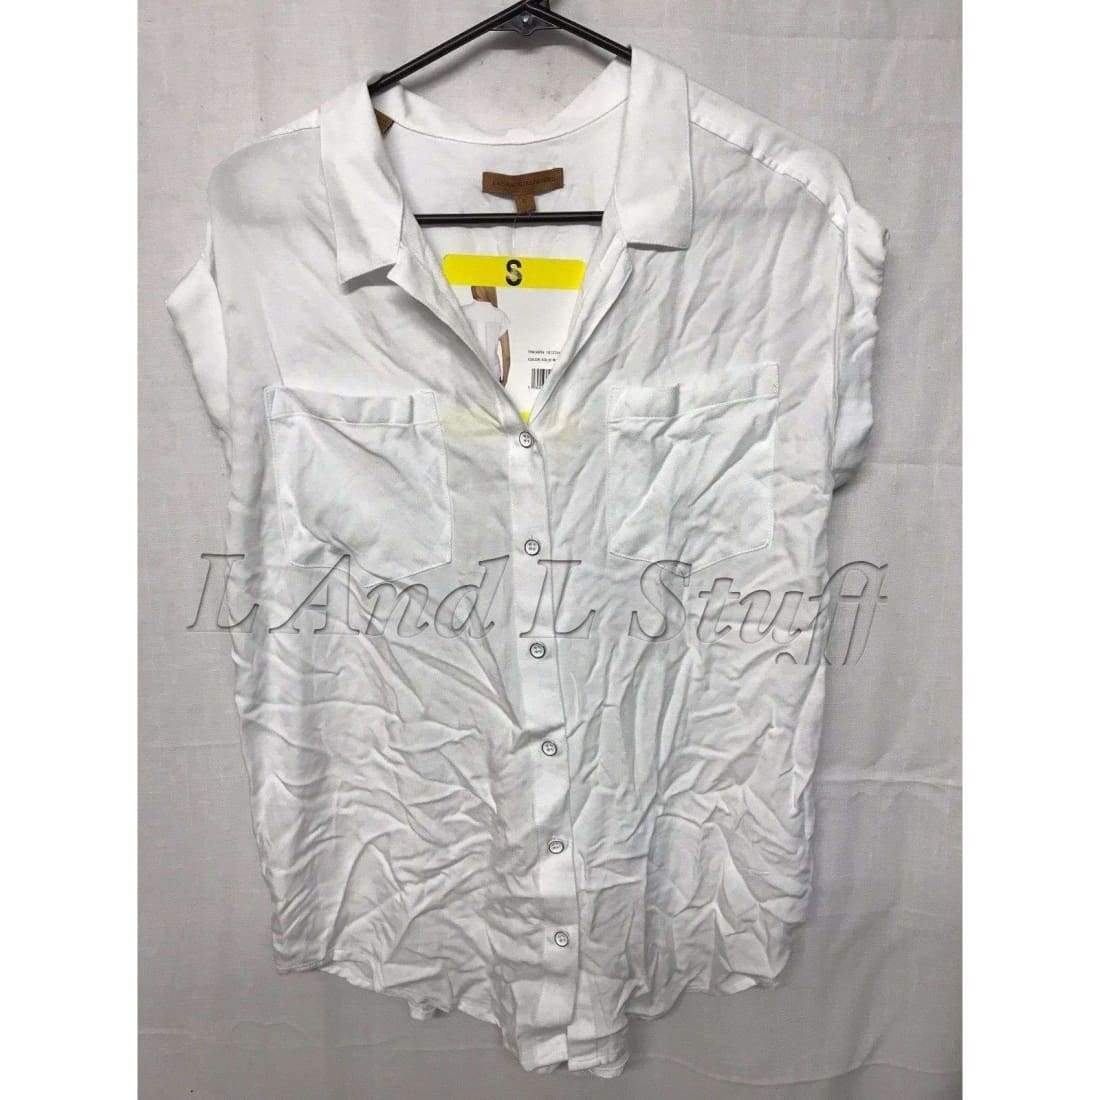 Jachs Girlfriend Button Down Short/ Cap Sleeve Top Womens Tops & Blouses